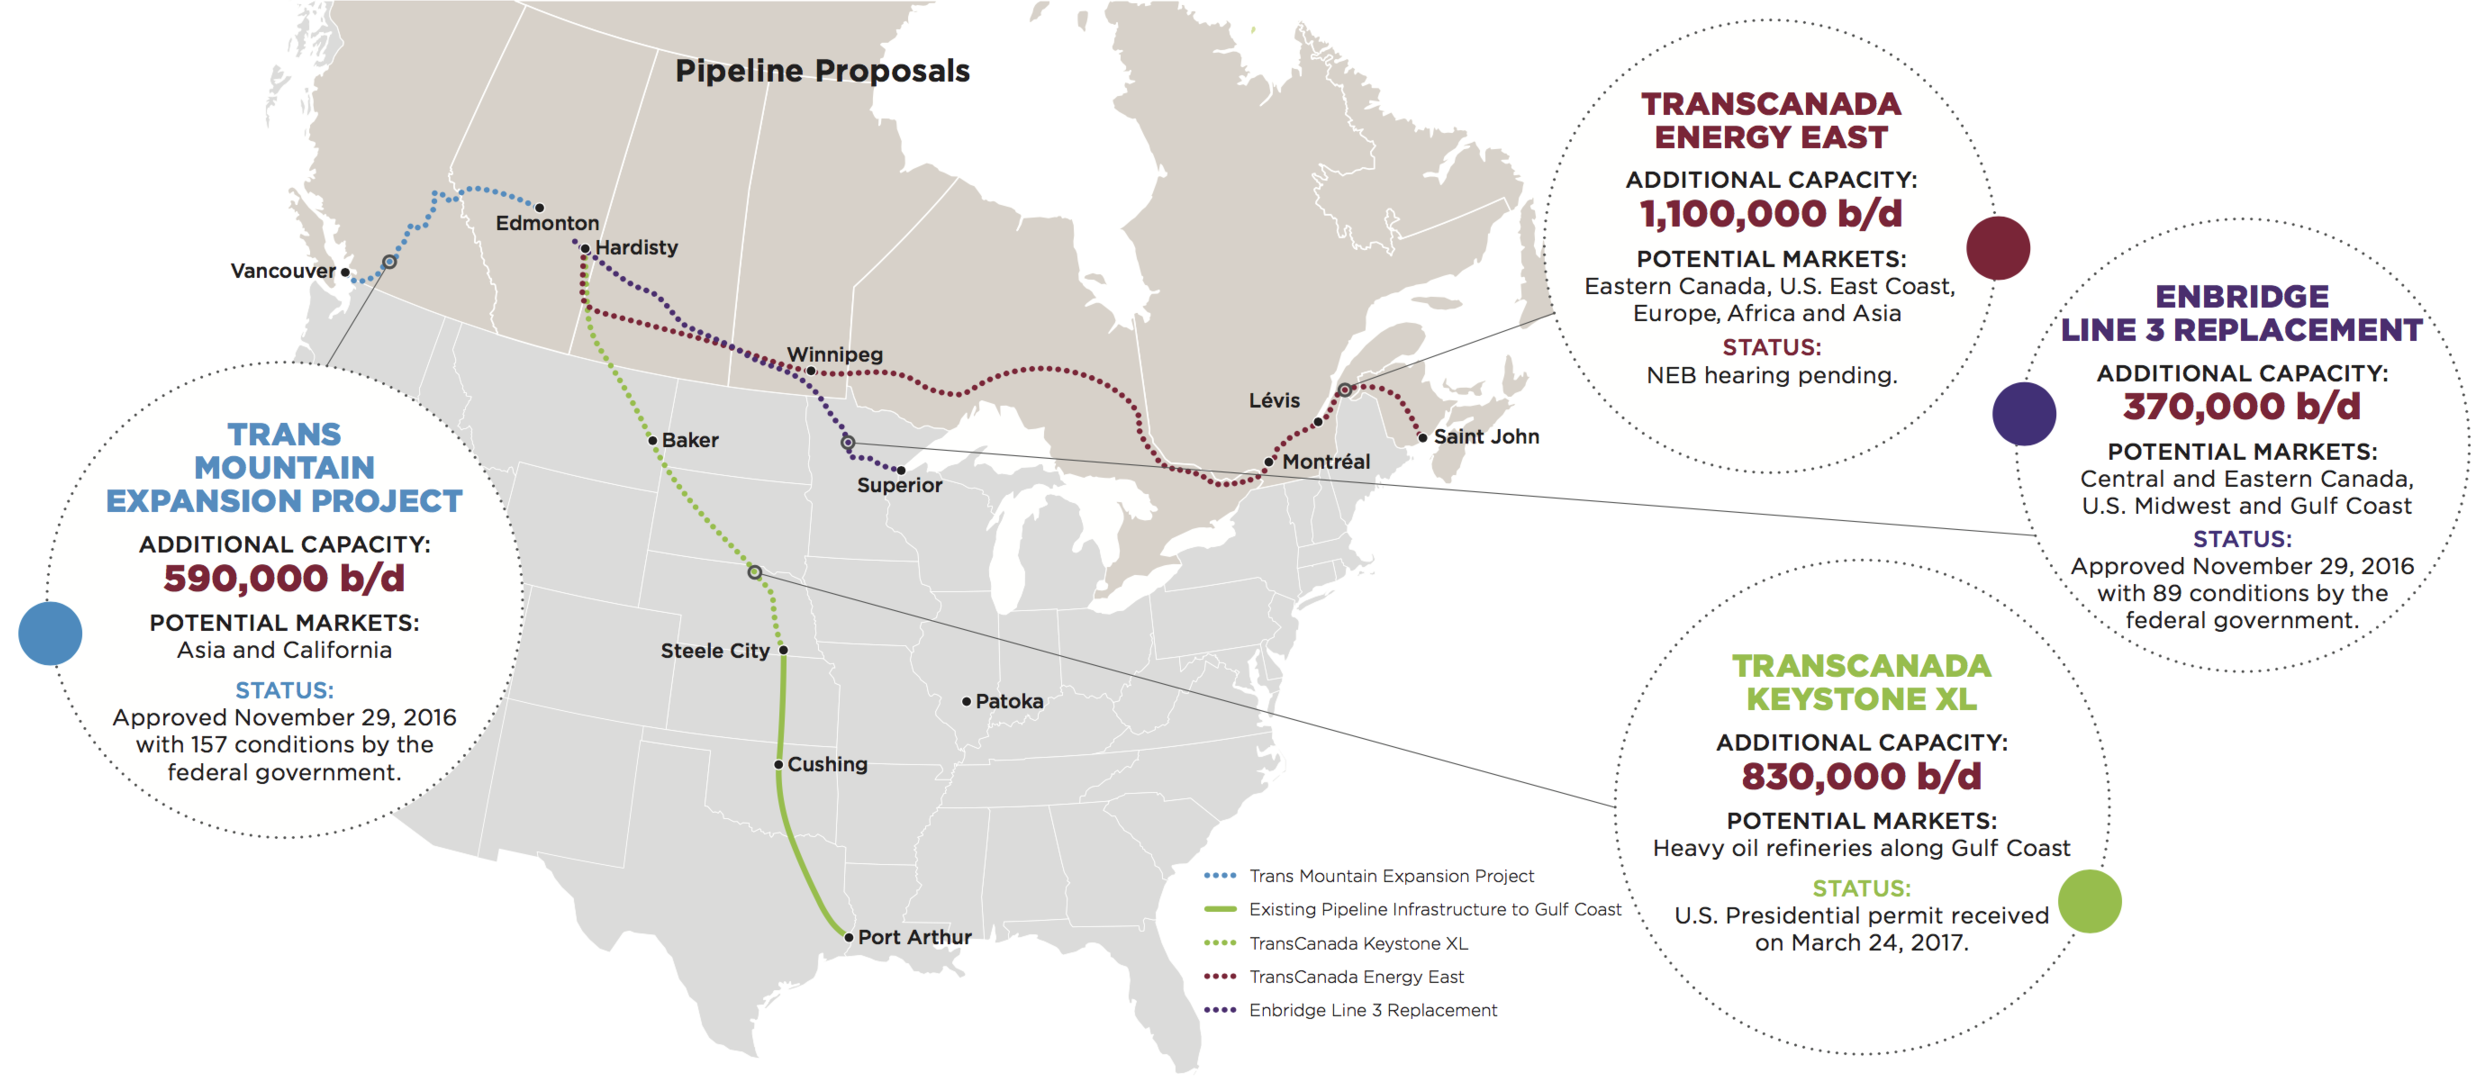 PLANNED & PROPOSED PIPELINE EXPANSIONS IN CANADA (COURTESY CAPP)